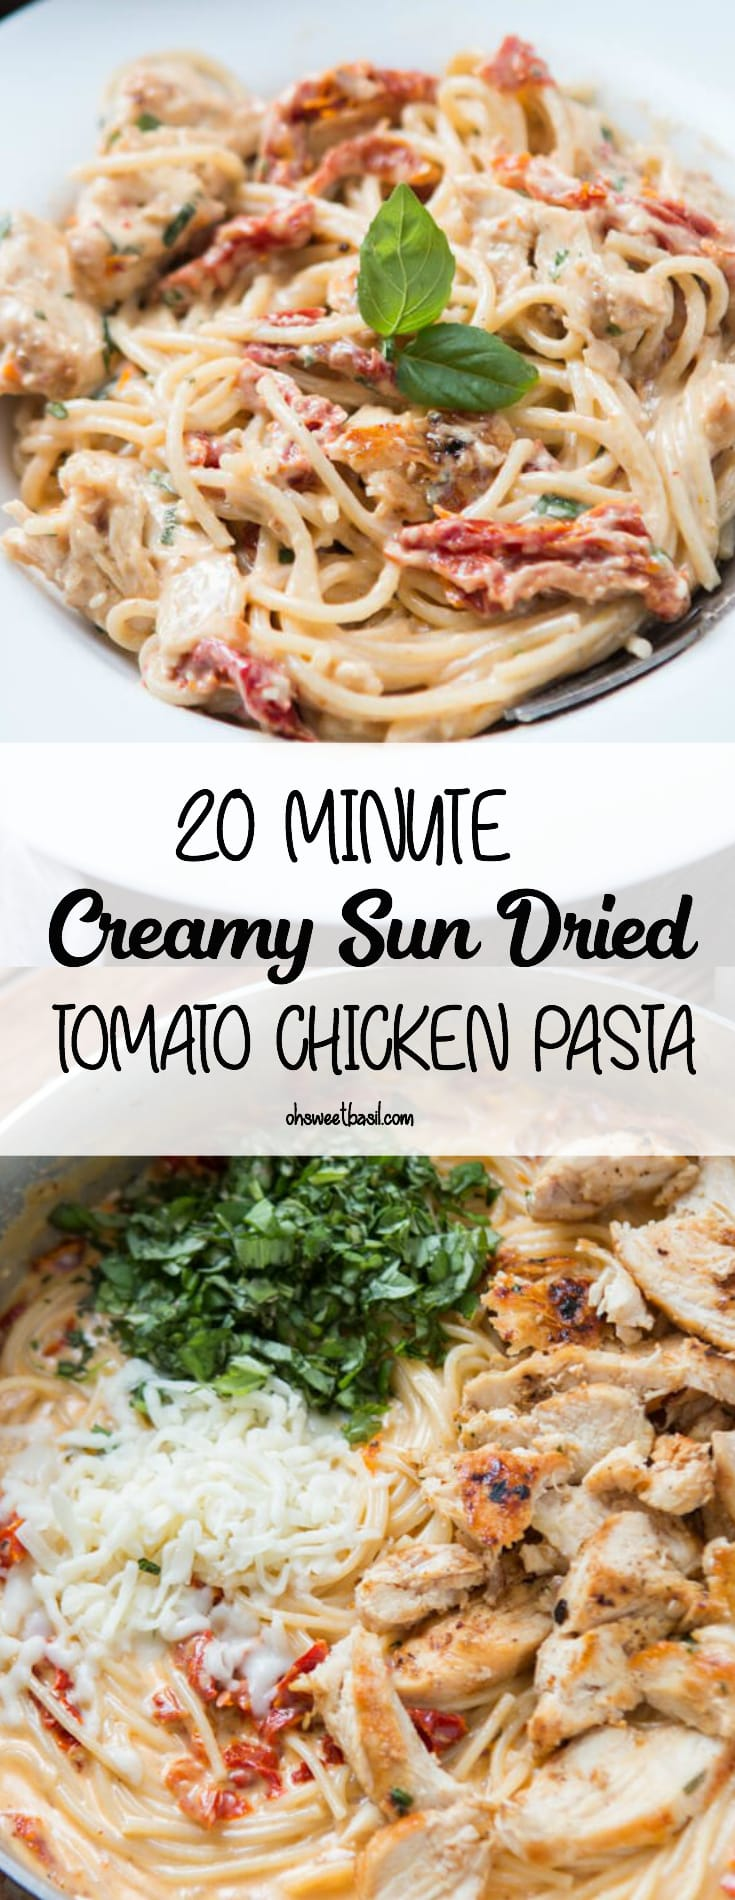 A bowl of creamy sun dried tomato chicken pasta